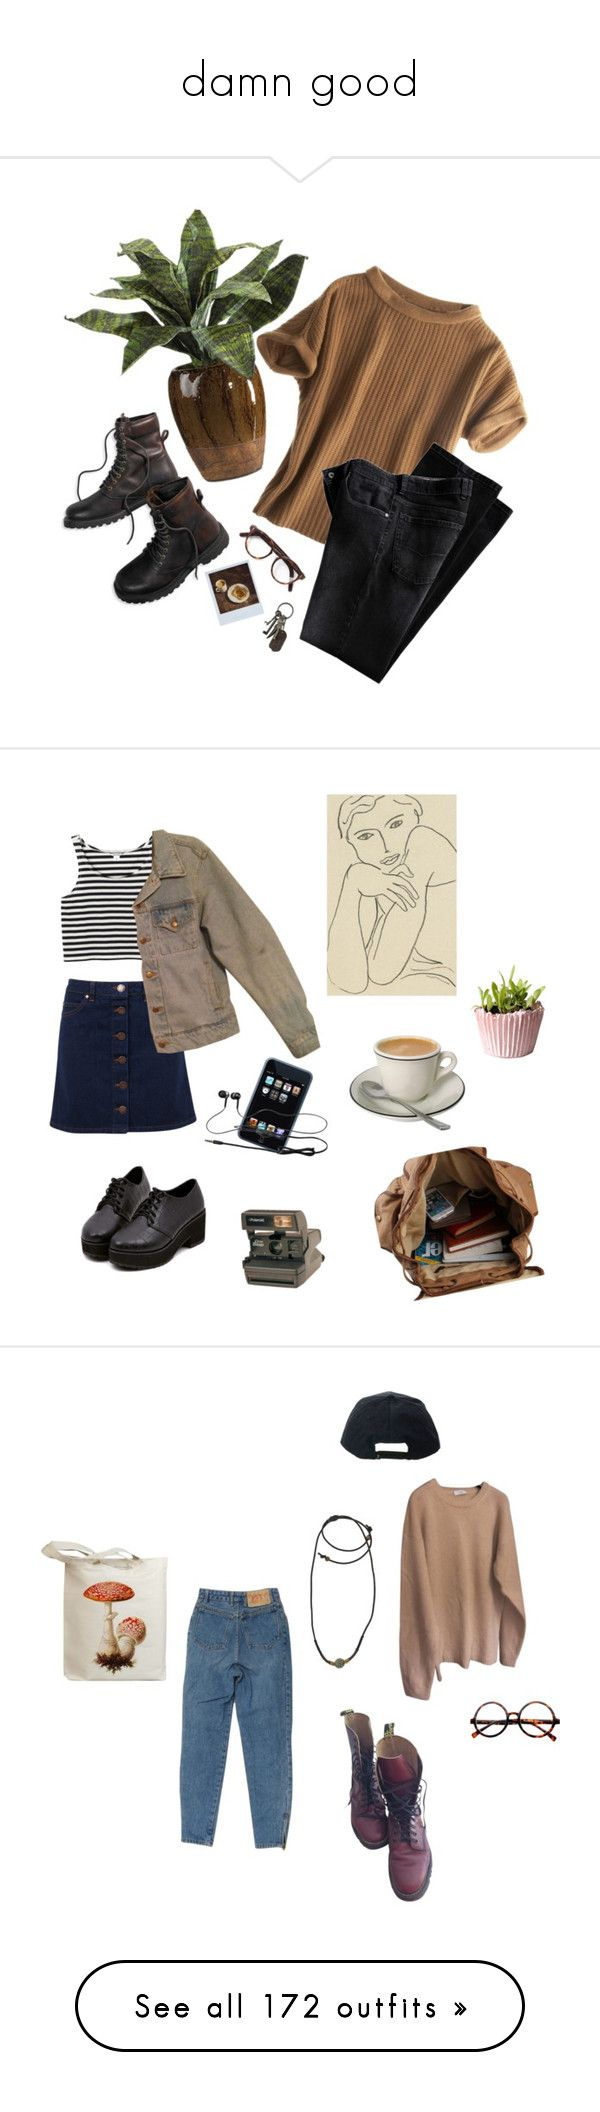 """""""damn good"""" by origami-kitten ❤ liked on Polyvore featuring Calypso St. Barth, Cutler and Gross, American Eagle Outfitters, Polaroid, AllSaints, vintage, Miss Selfridge, Monki, American Apparel and art"""